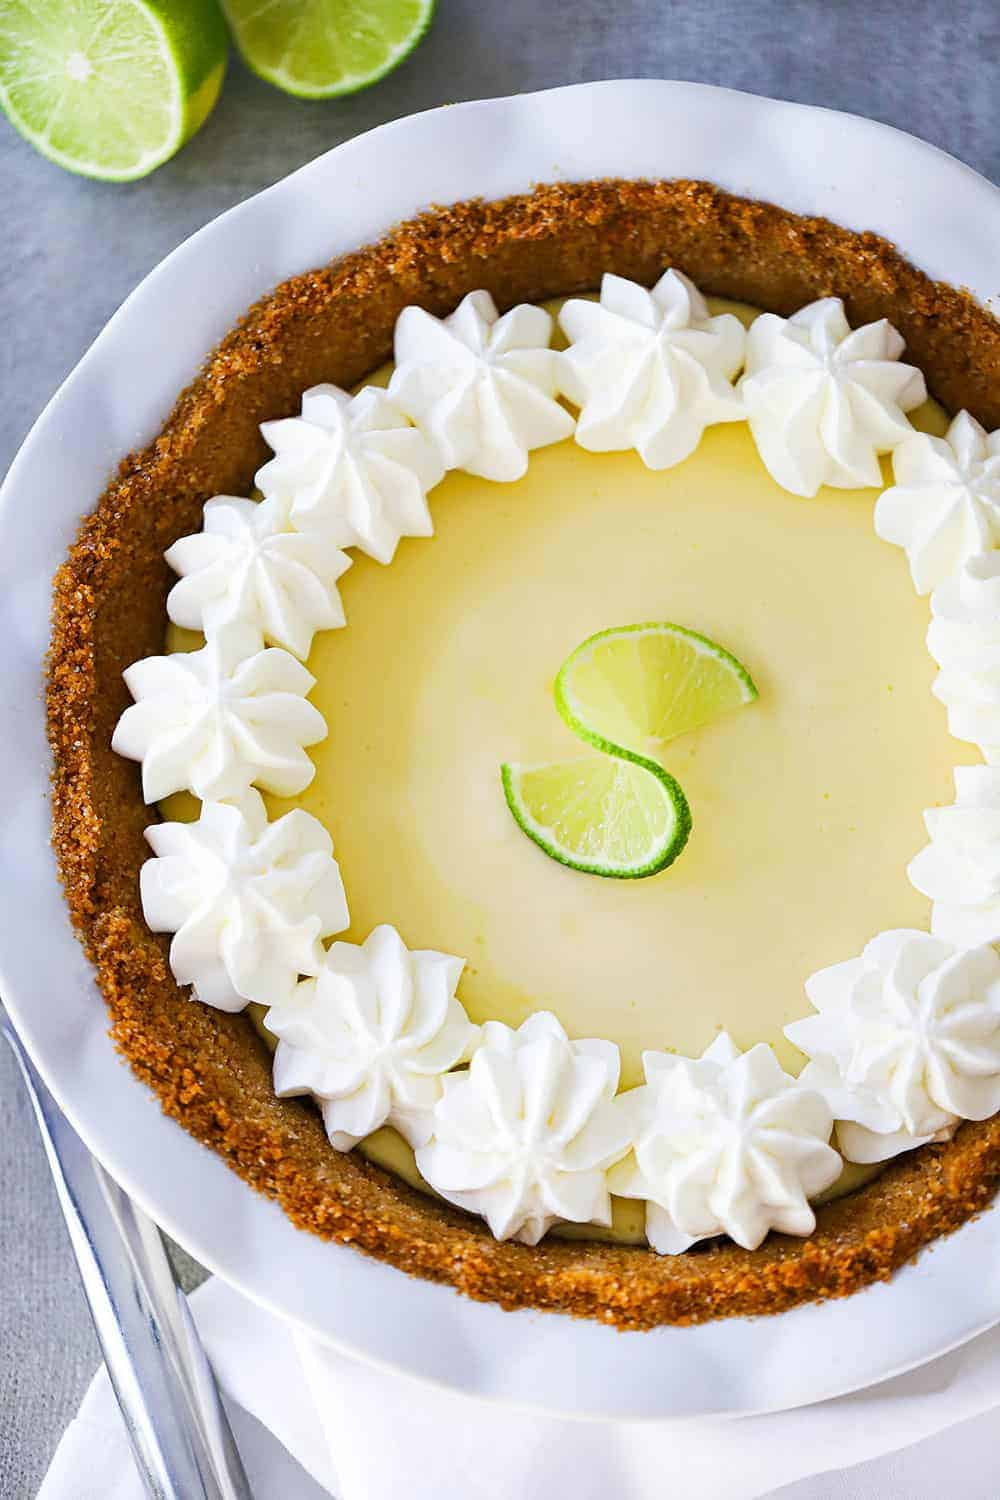 Incredible Key Lime Pie recipe